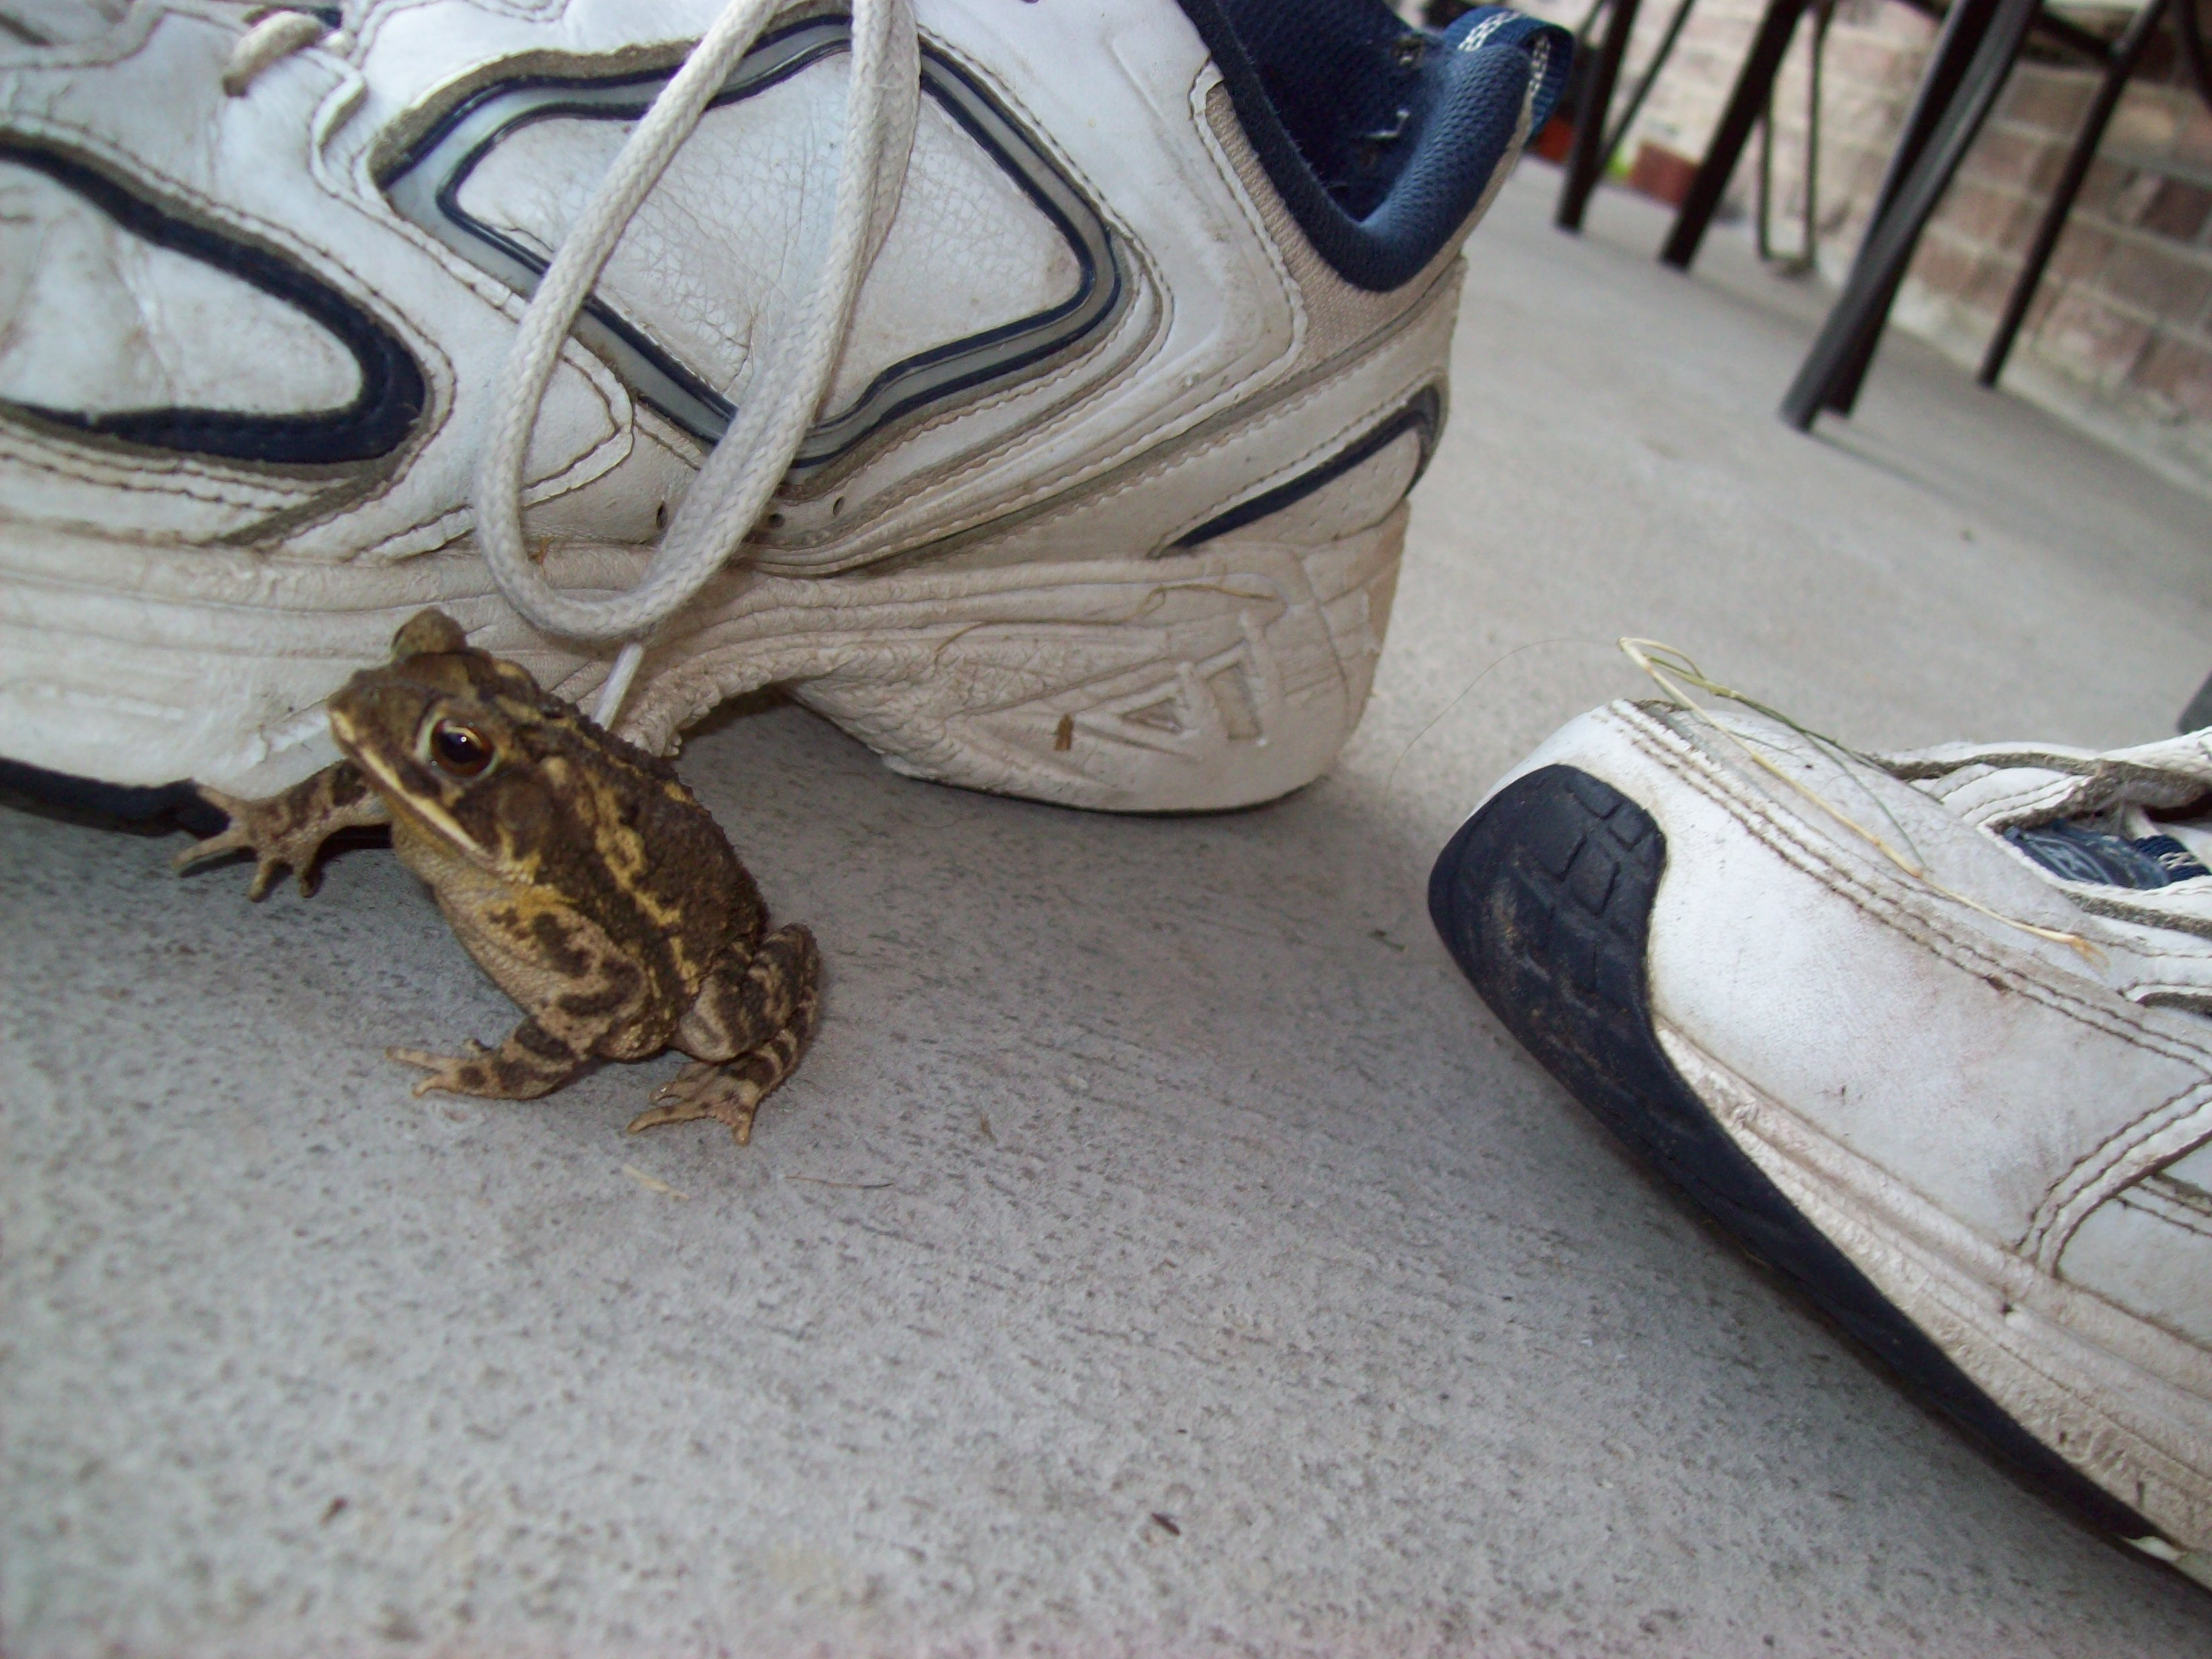 The frog and the shoe